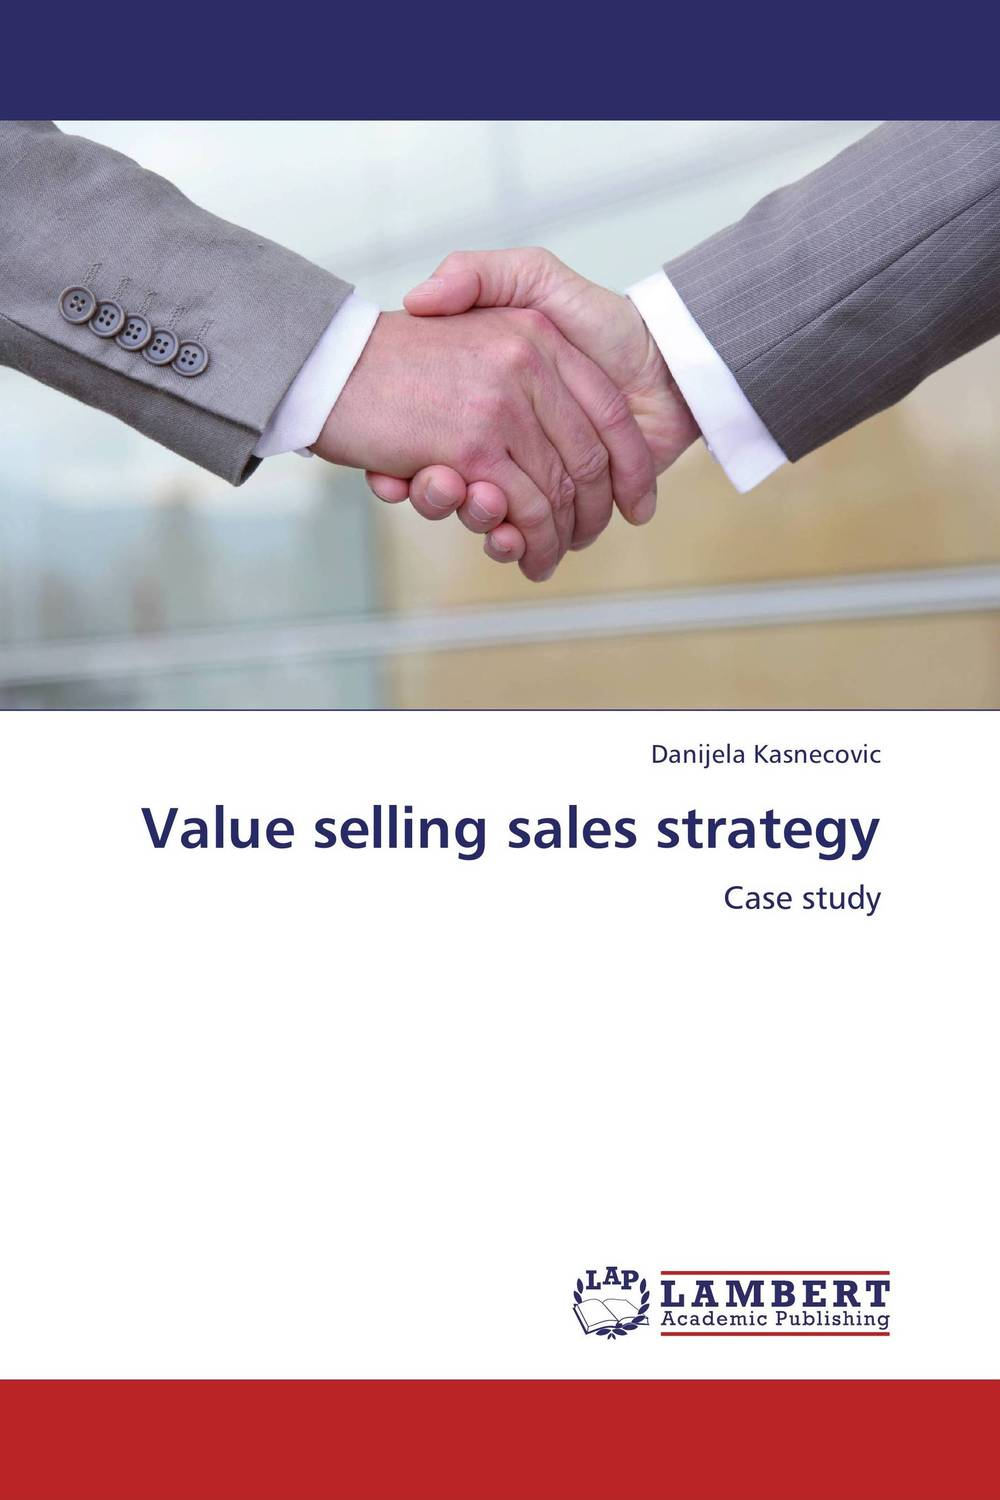 Value selling sales strategy kitred5l350unv35668 value kit rediform sales book red5l350 and universal standard self stick notes unv35668